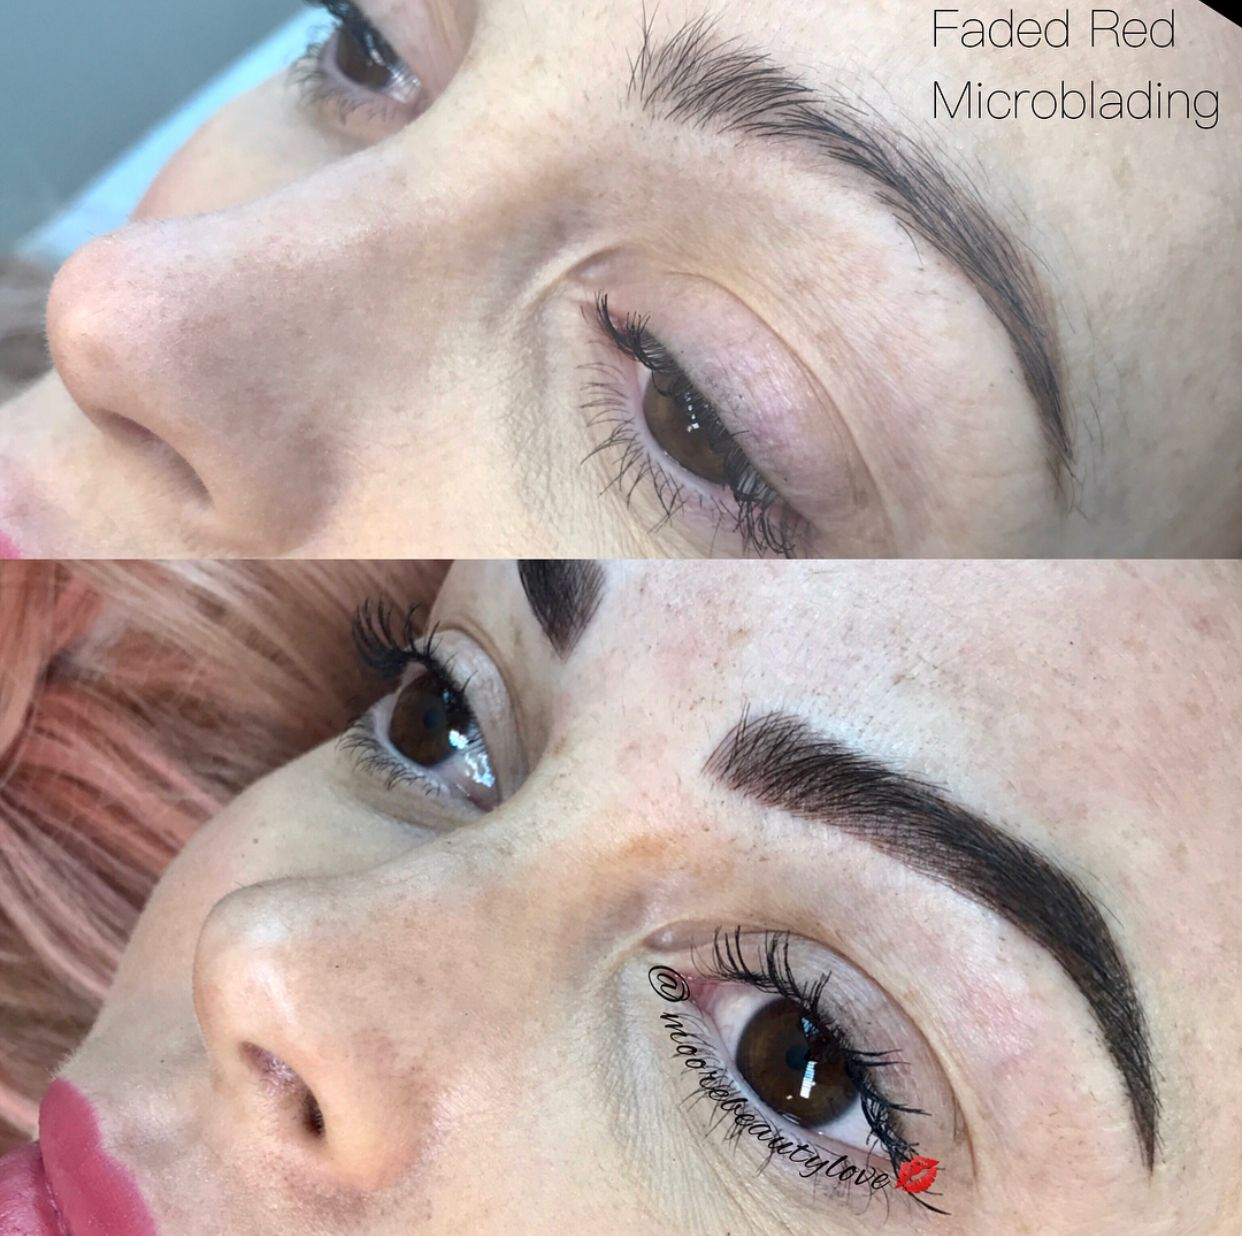 Took those faded red brows and turned them Fab! 3D